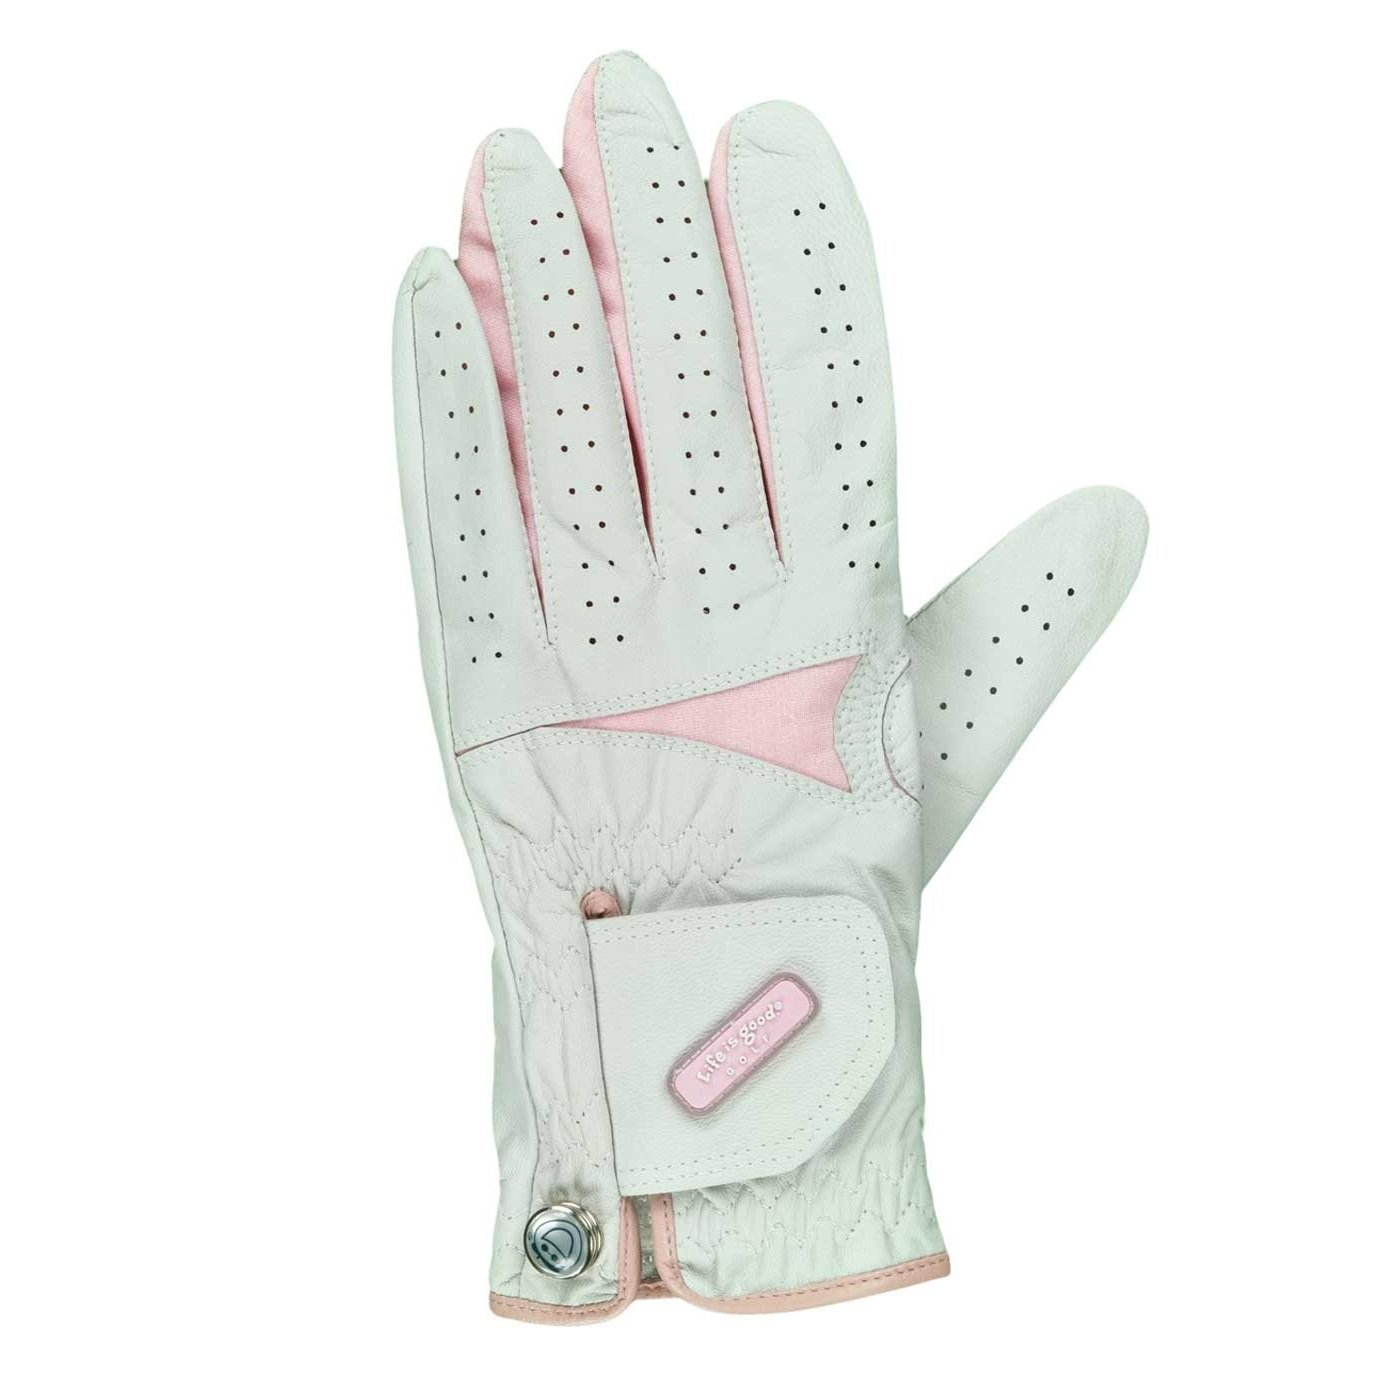 NIB Life is Good Ladies White & Pink Left Hand Leather Golf Glove - S